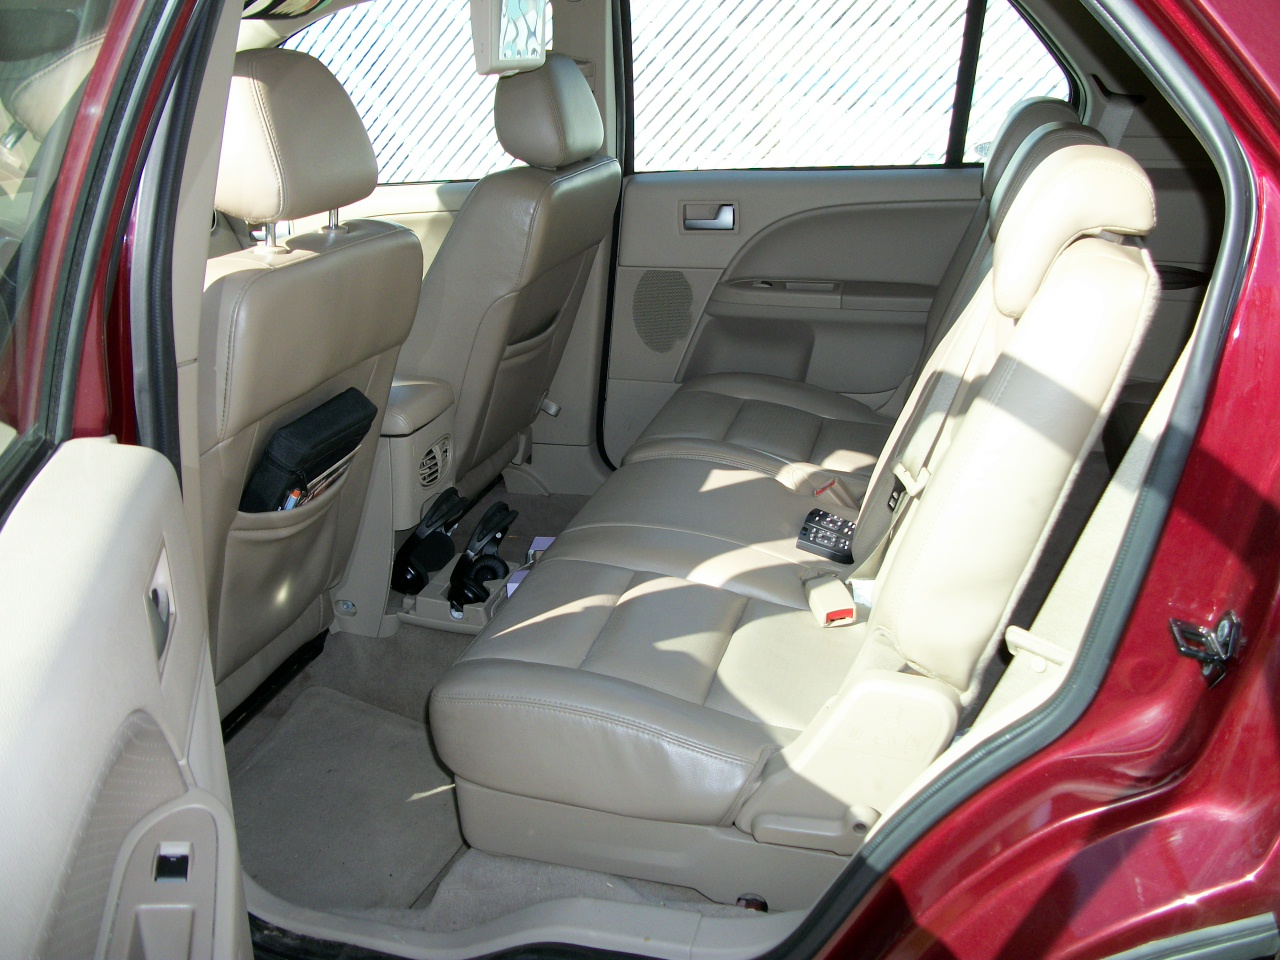 2005 Ford Freestyle Interior Pictures Cargurus